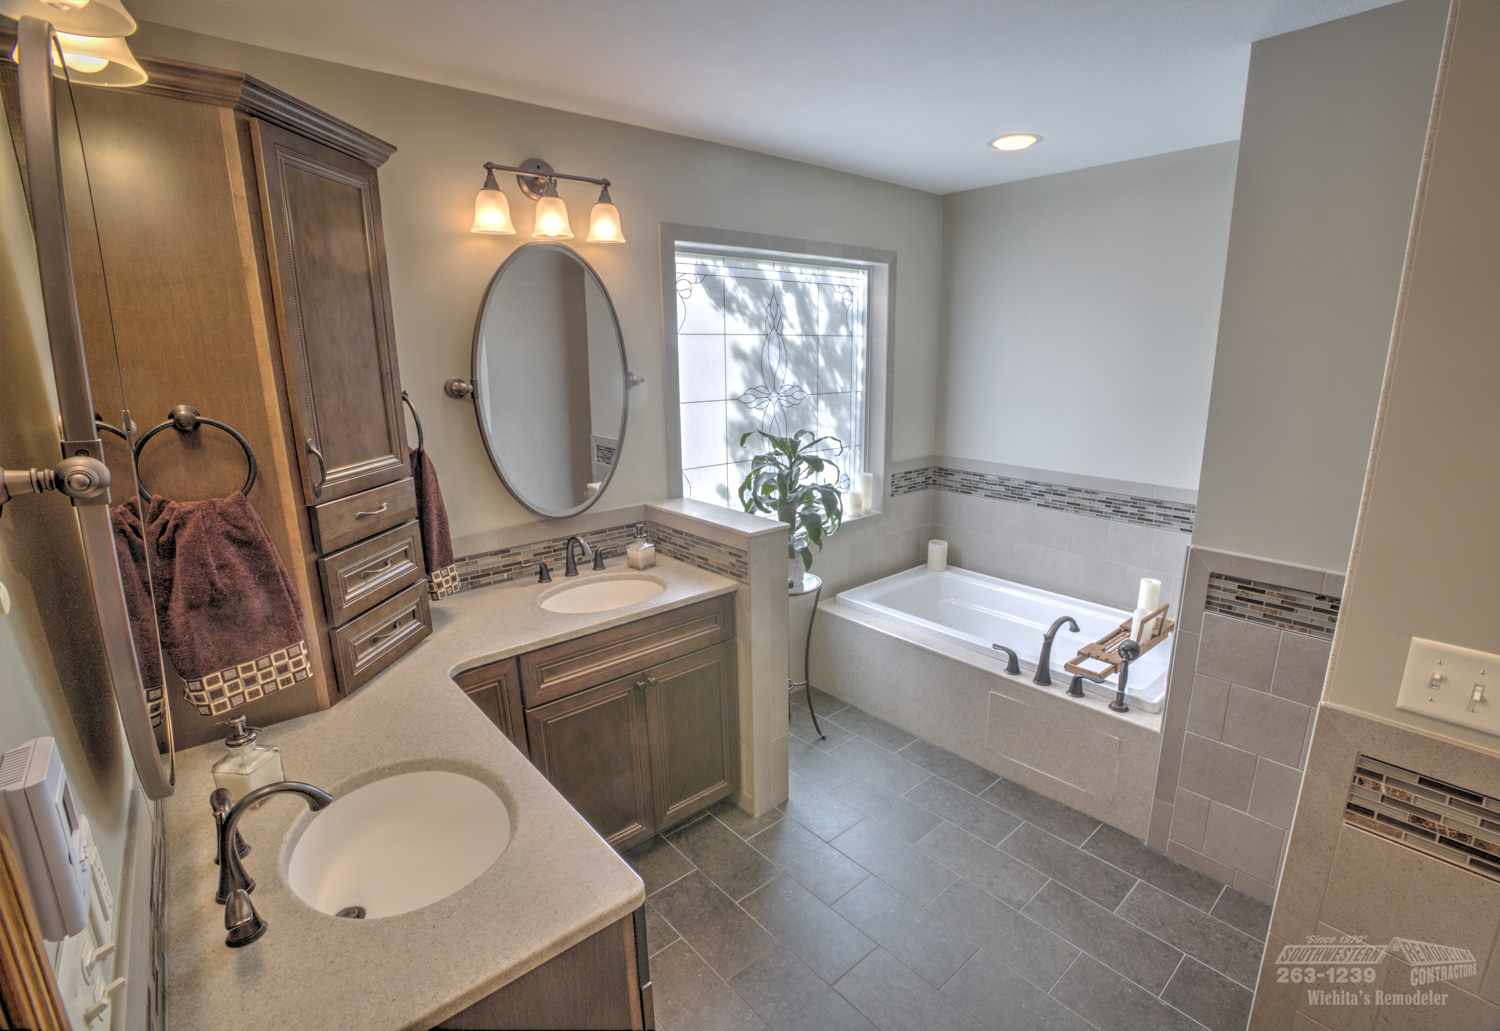 Bathroom remodeling southwestern remodeling wichita for Bathroom renovation tampa